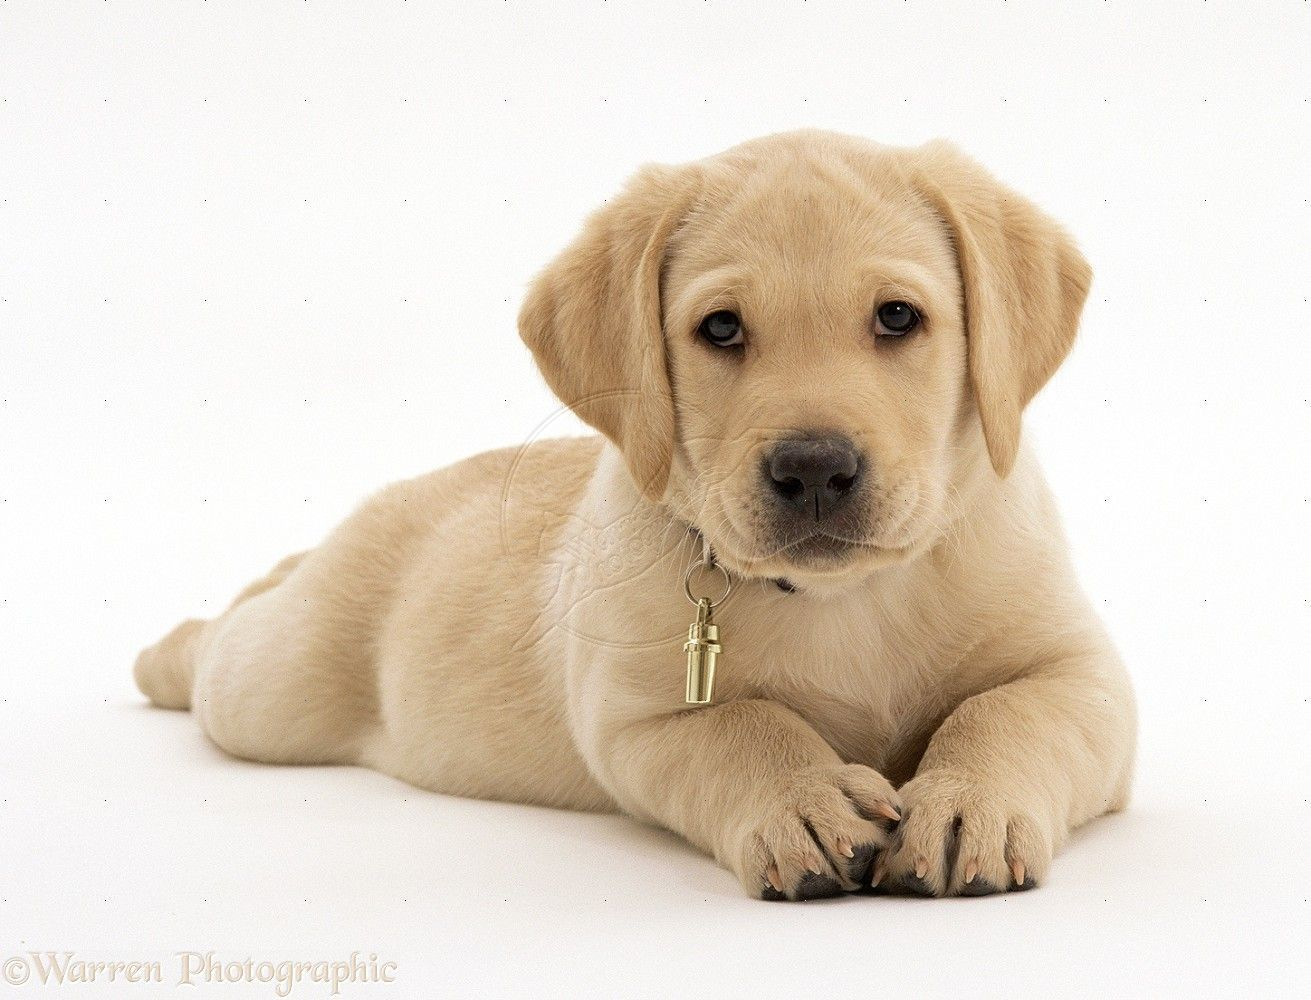 Images Of Puppies Wp23935 Yellow Labrador Retriever Puppy 8